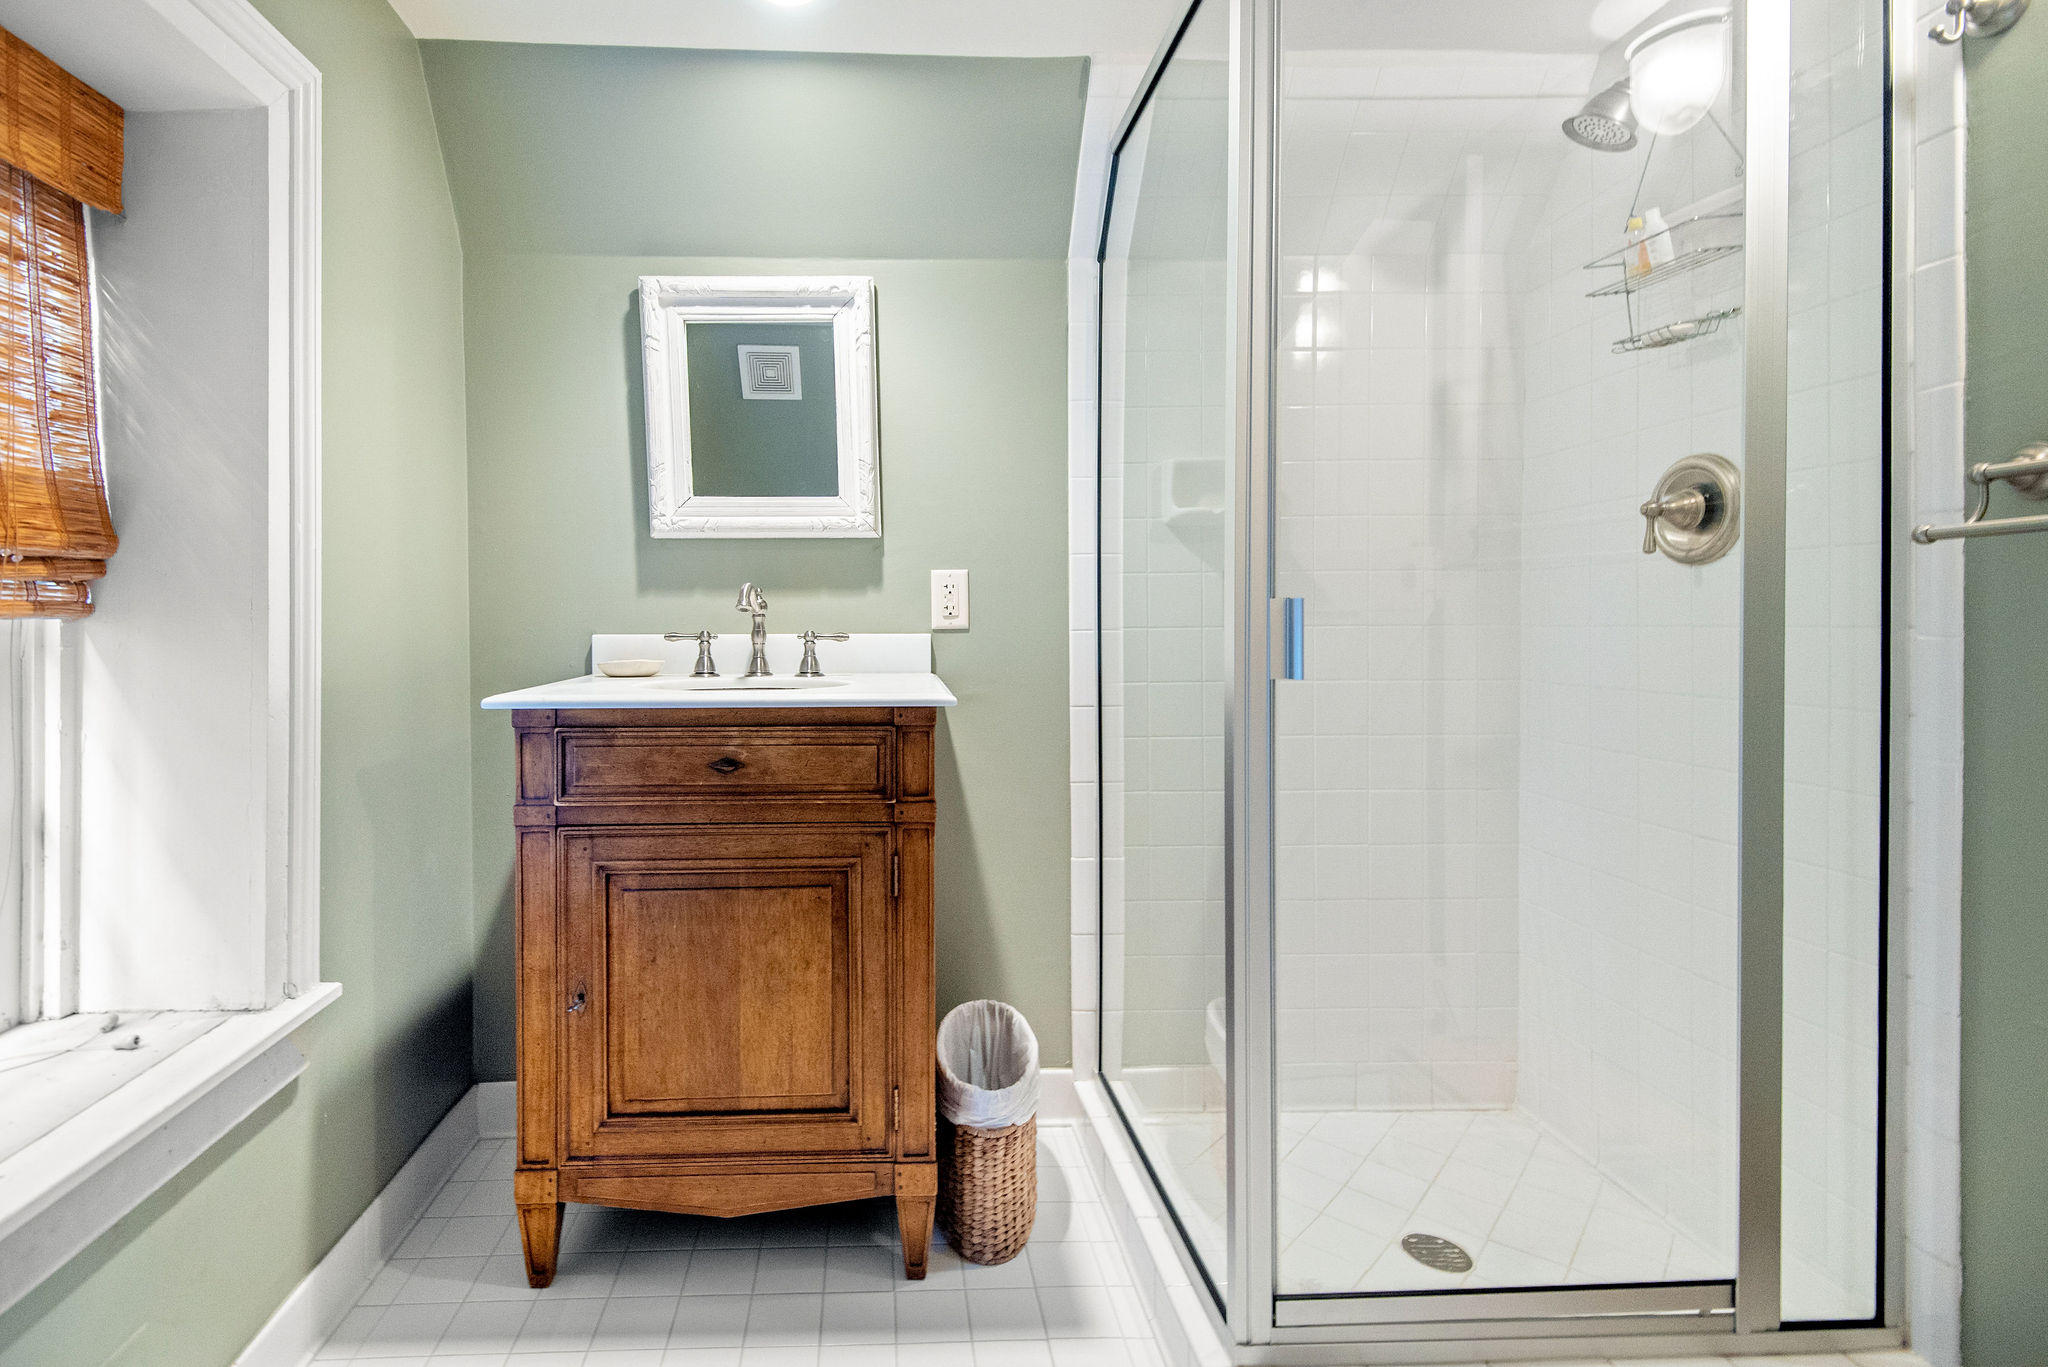 South of Broad Homes For Sale - 54 Tradd, Charleston, SC - 49